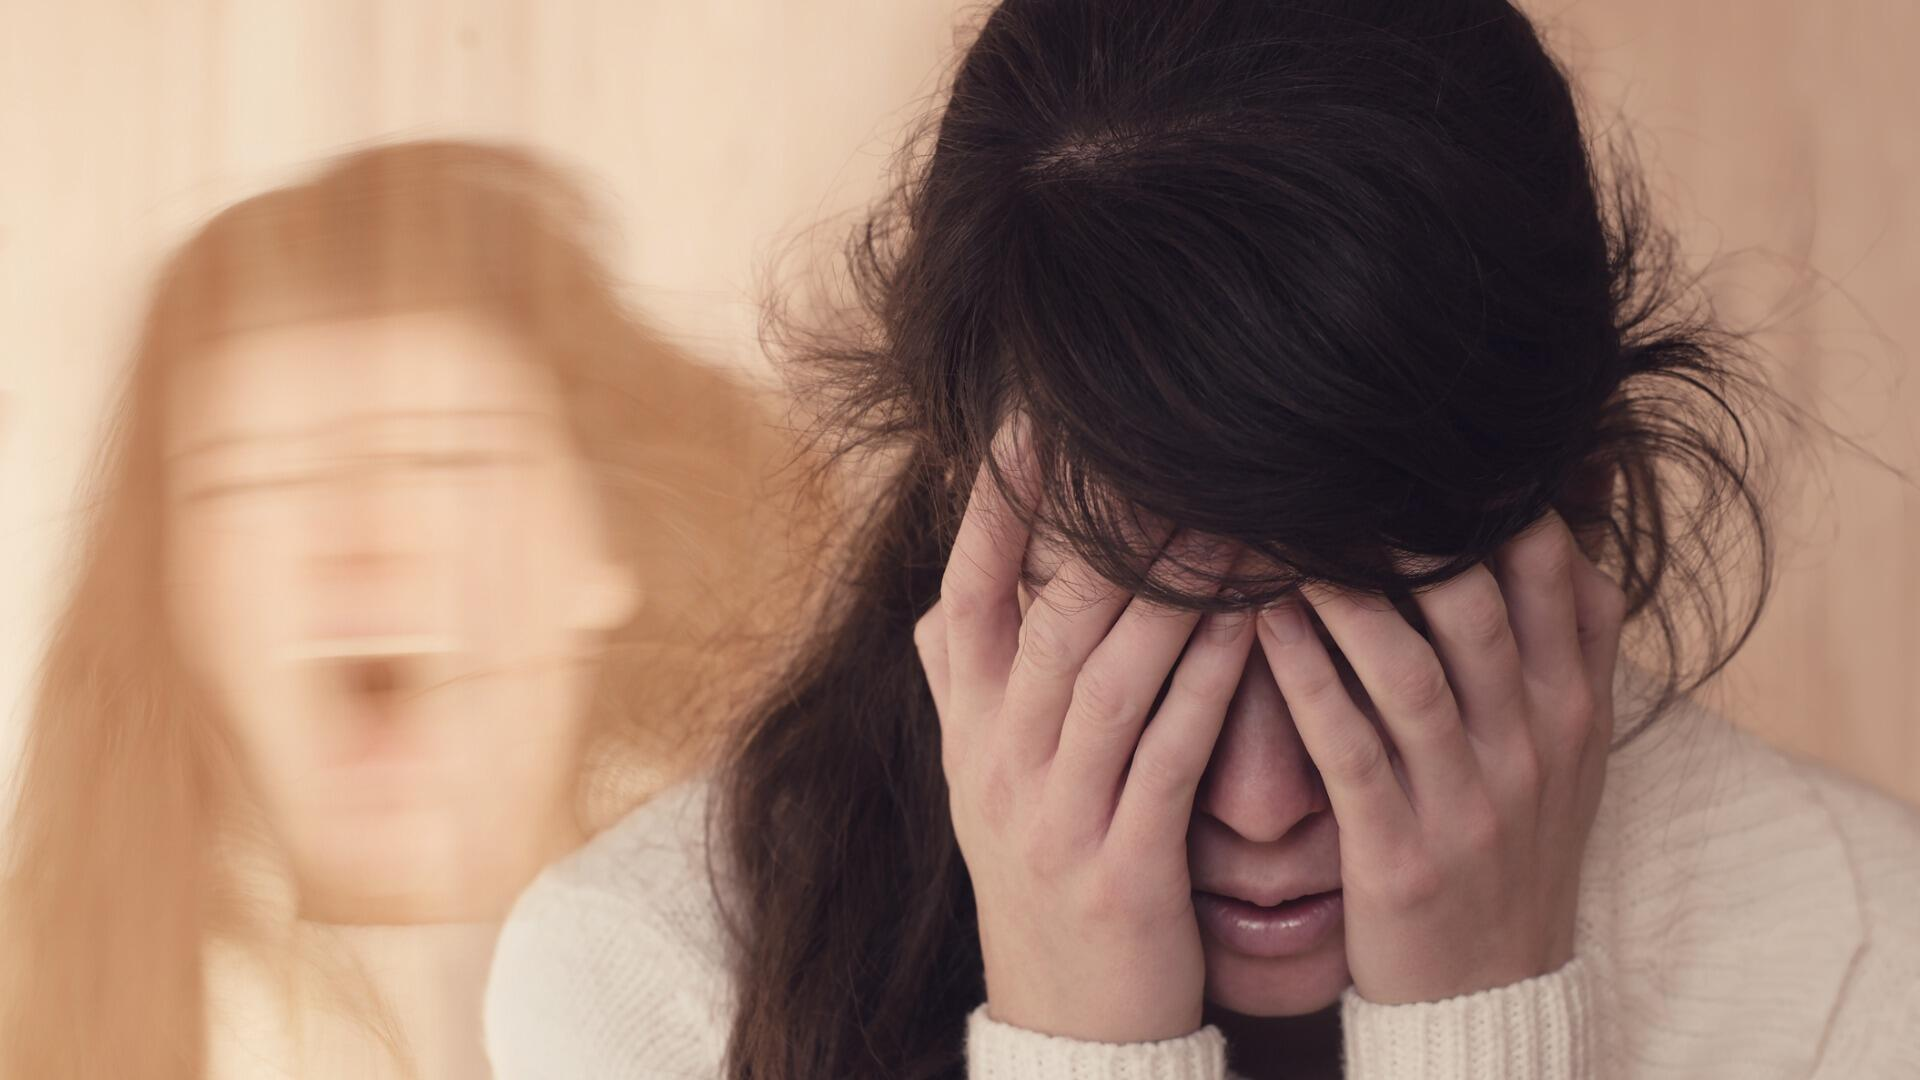 emotional-portrait-of-woman-suffering-from-mental-disorder-picture-id1202320190